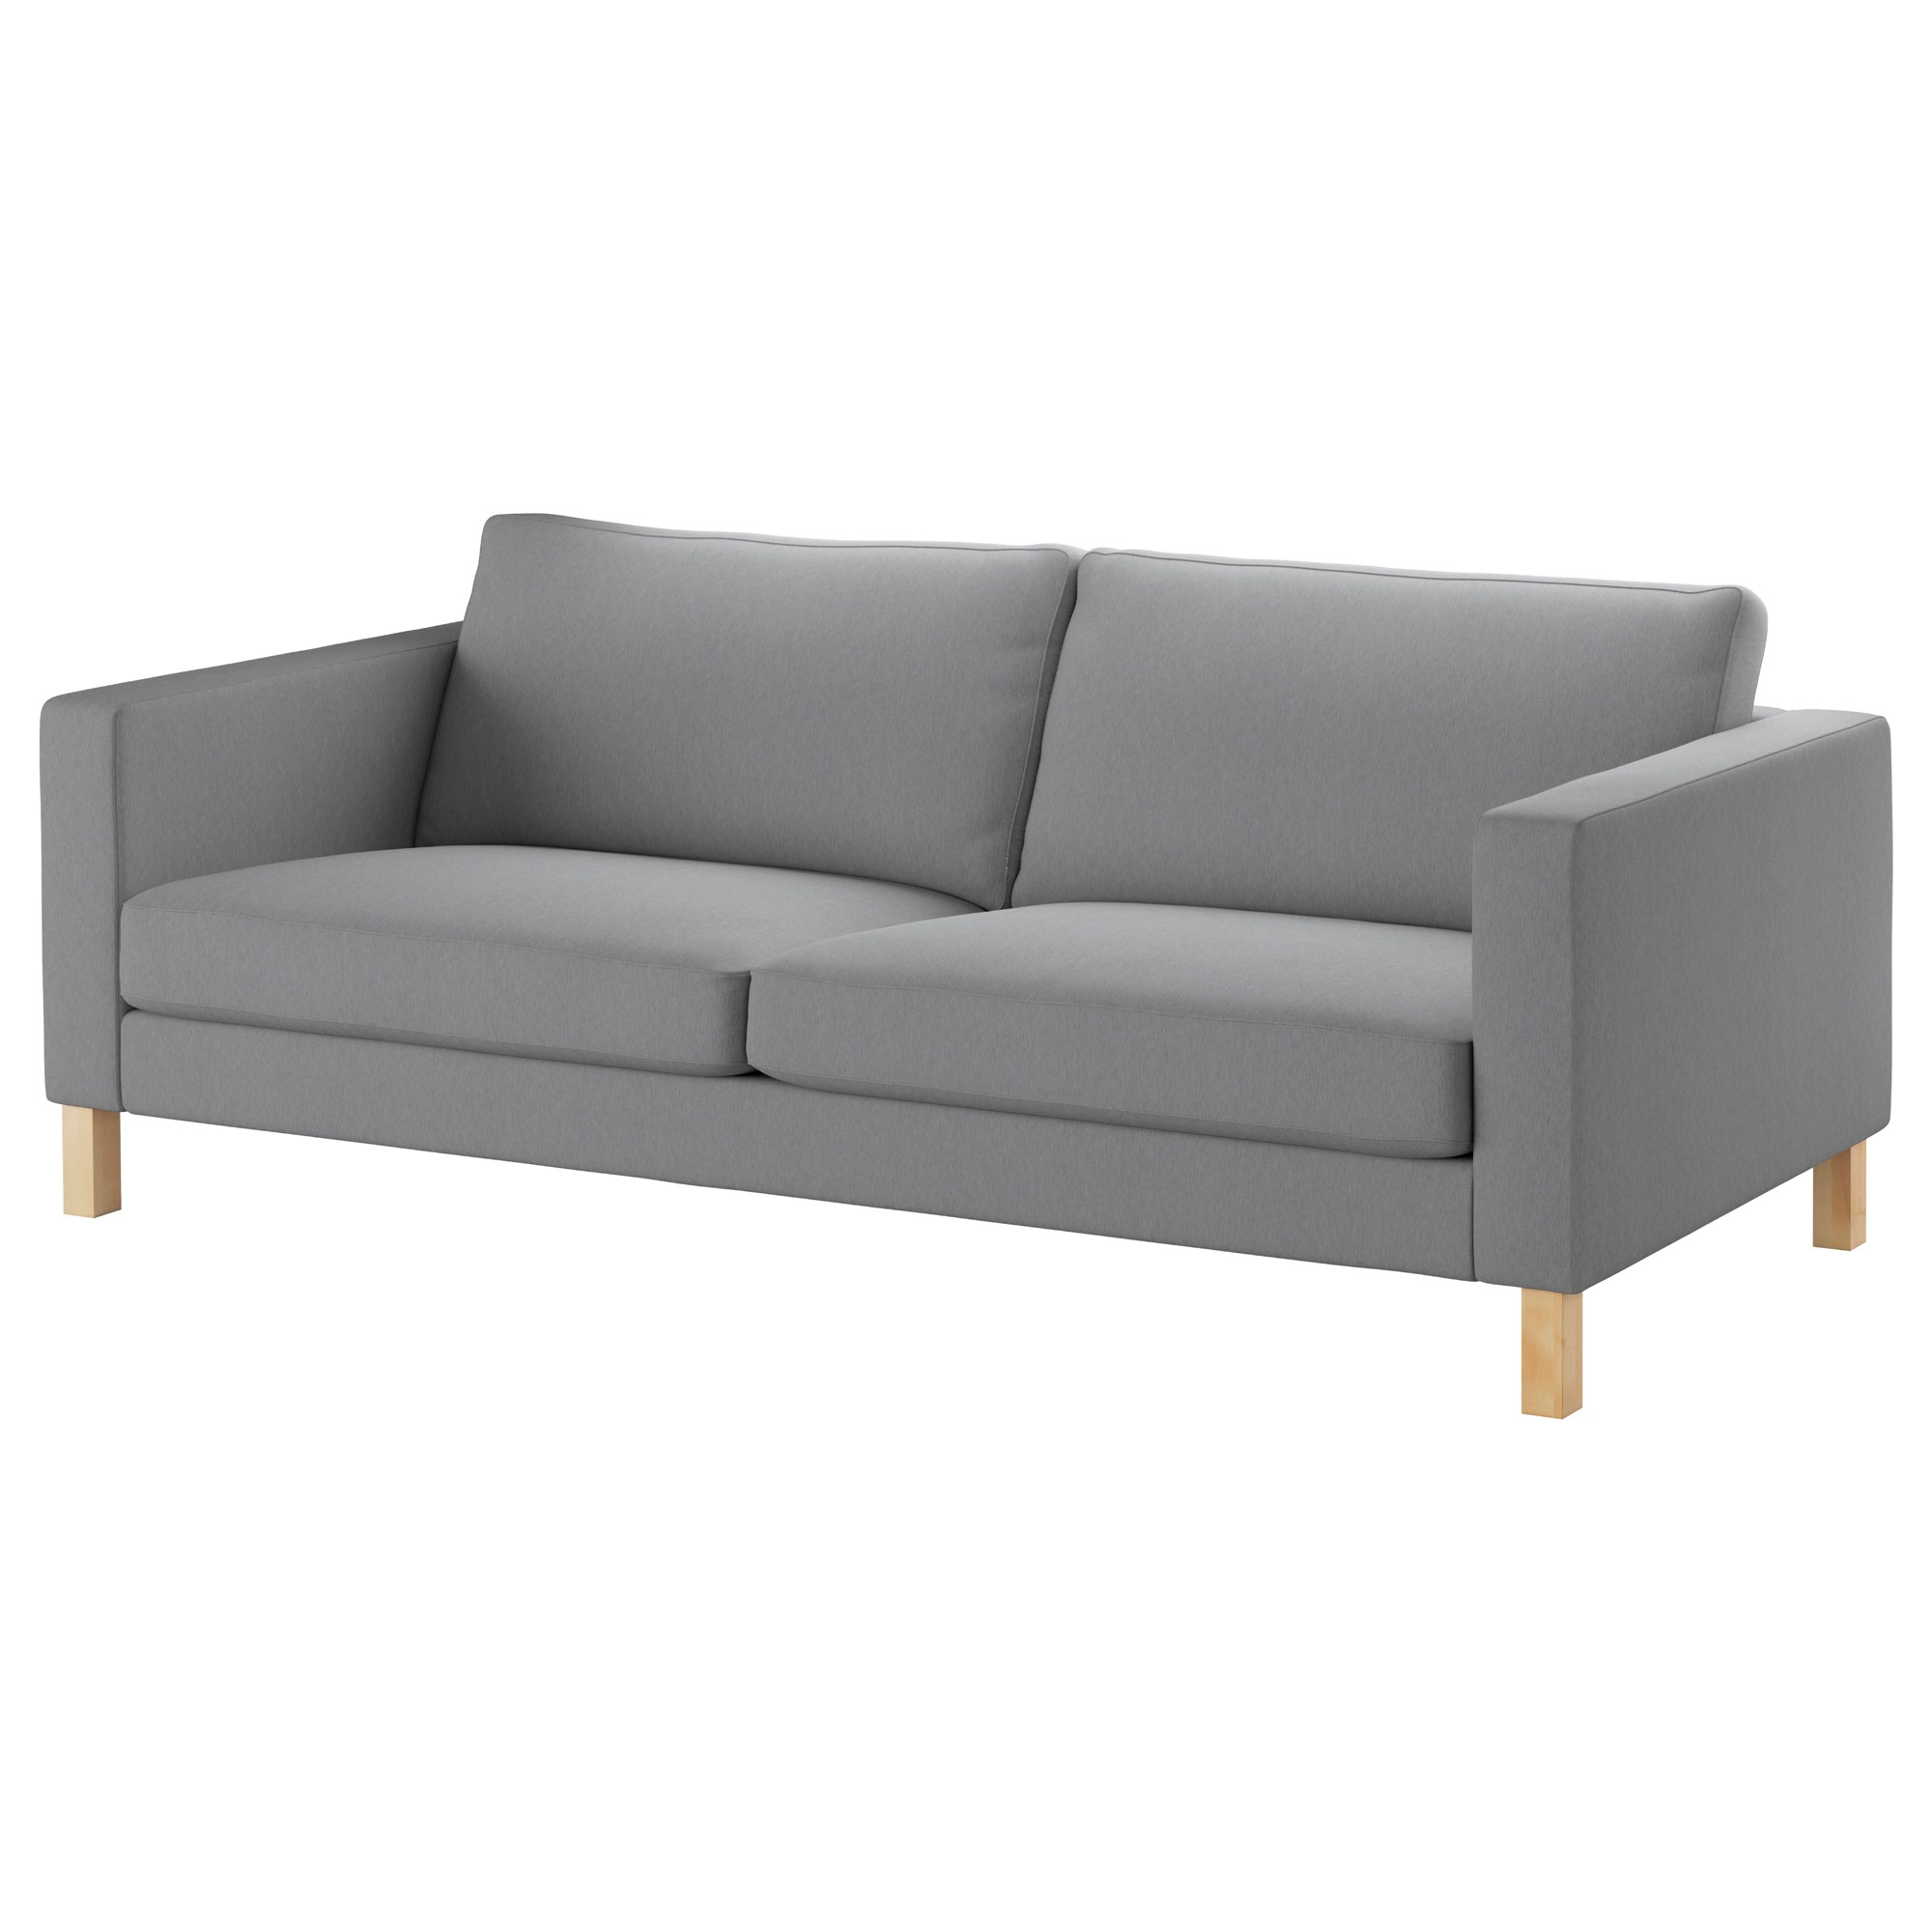 Sofa O Sillon Karlstad Sofa Knisa Light Gray